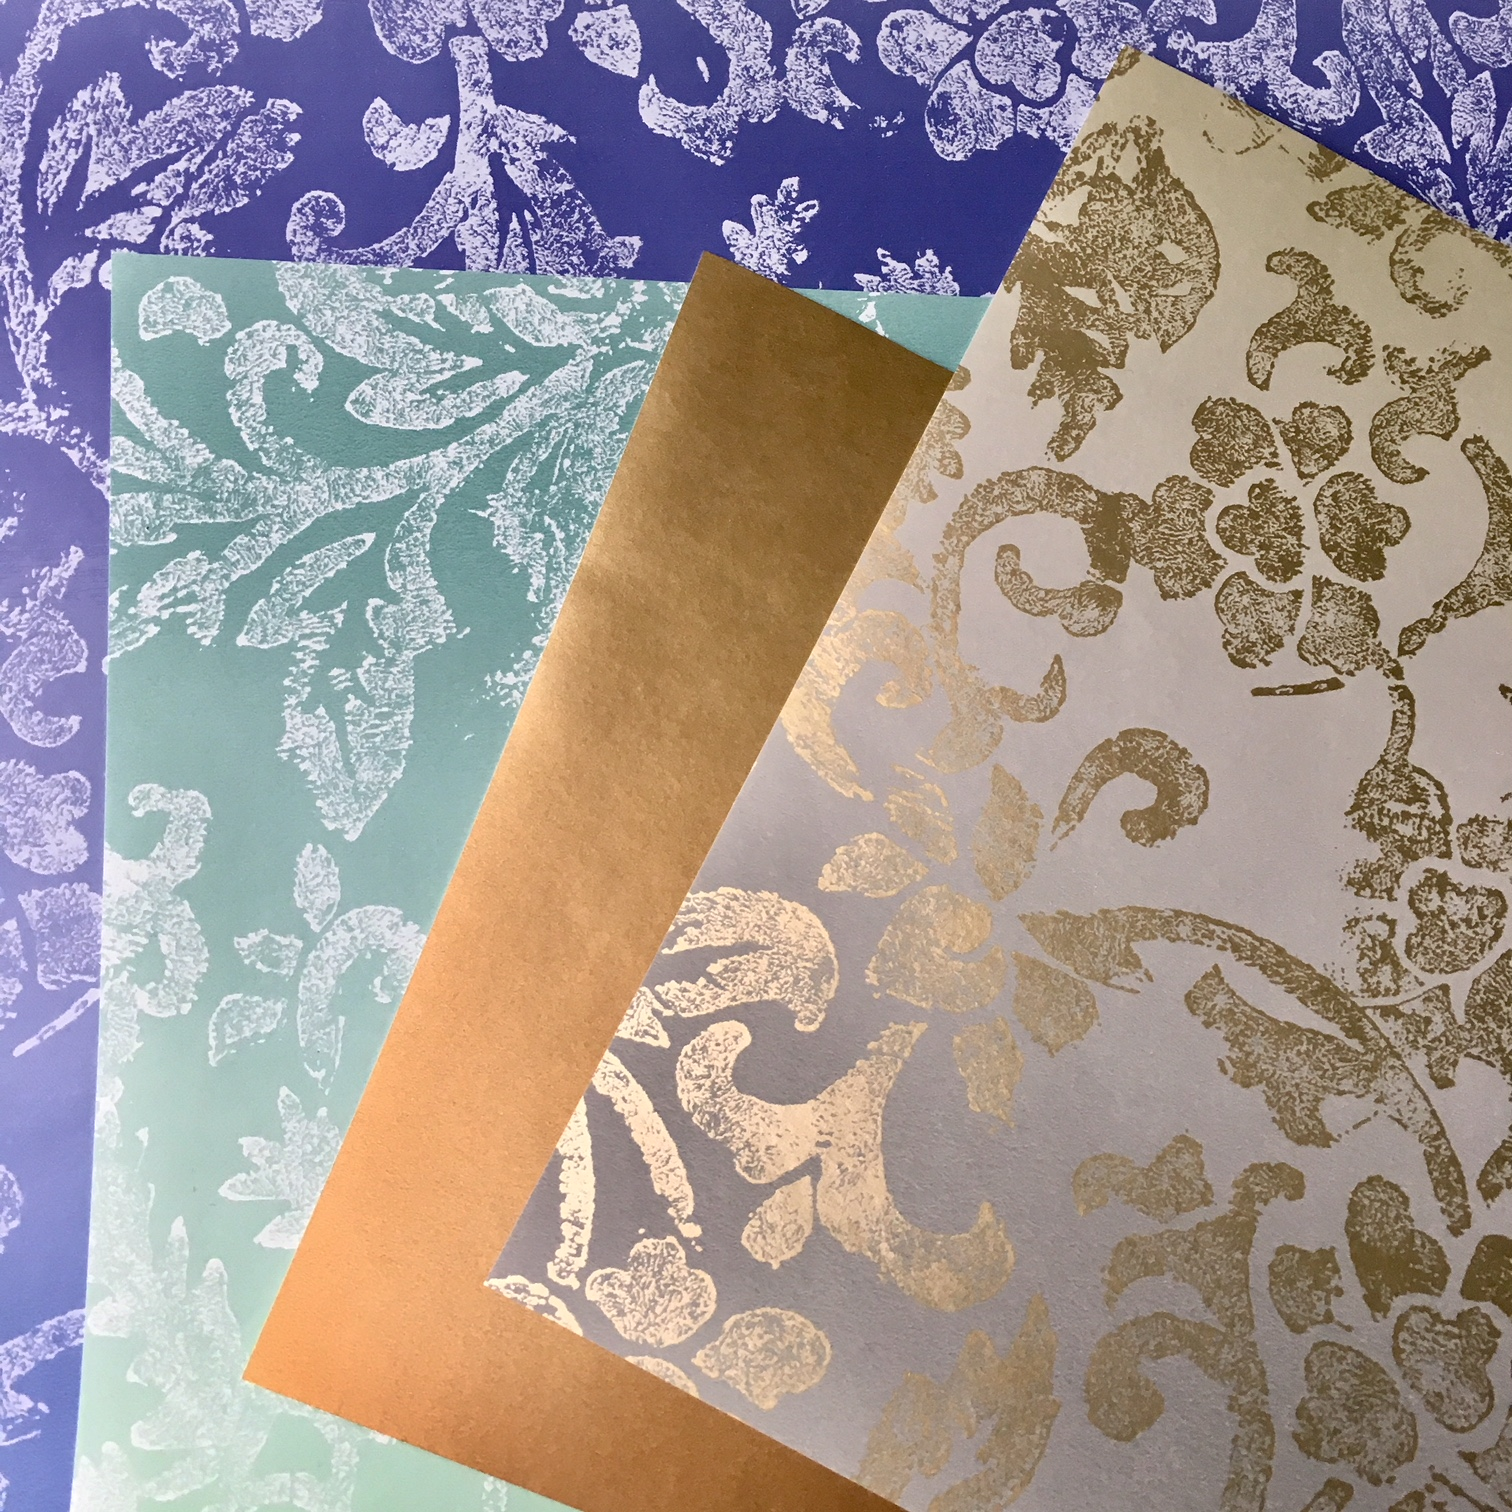 wallpaper pieces in blue, turquoise and gold